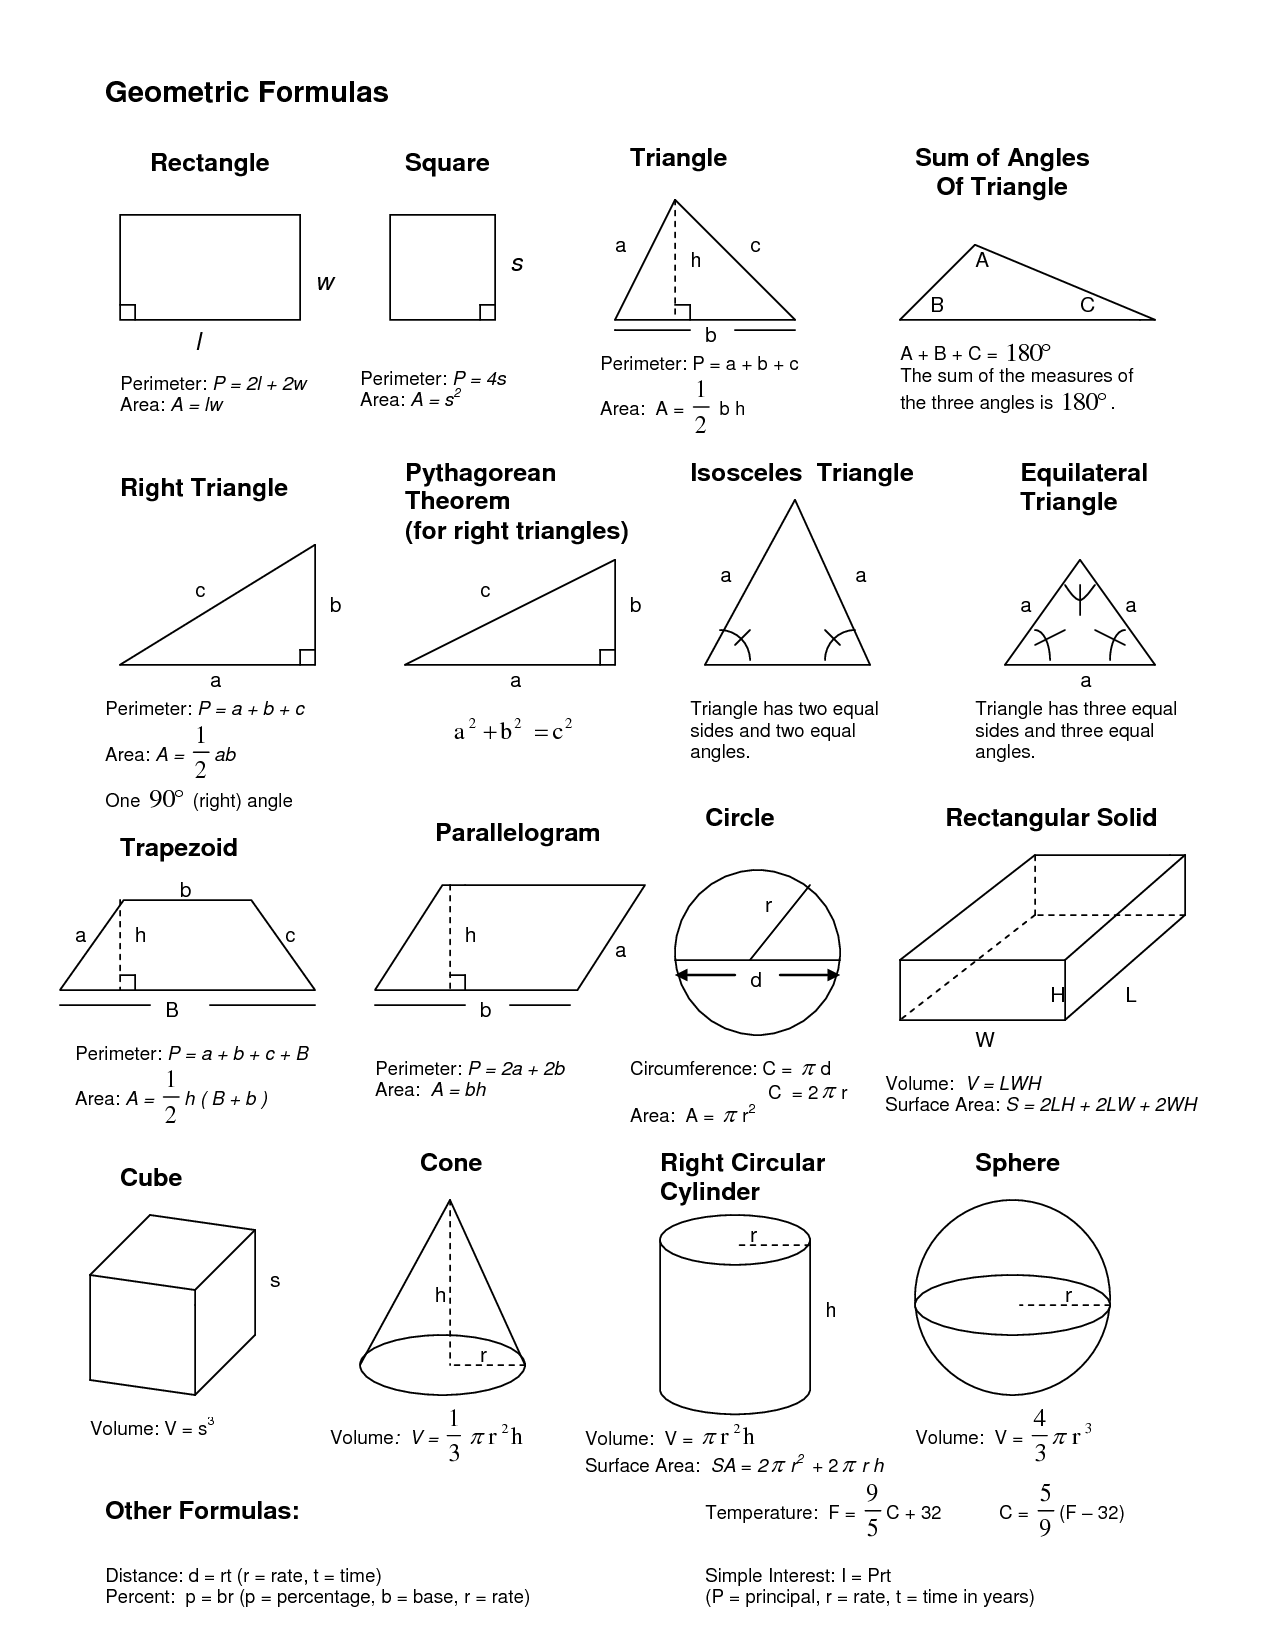 geometrical formulas | Maths | Pinterest | Geometric formulas